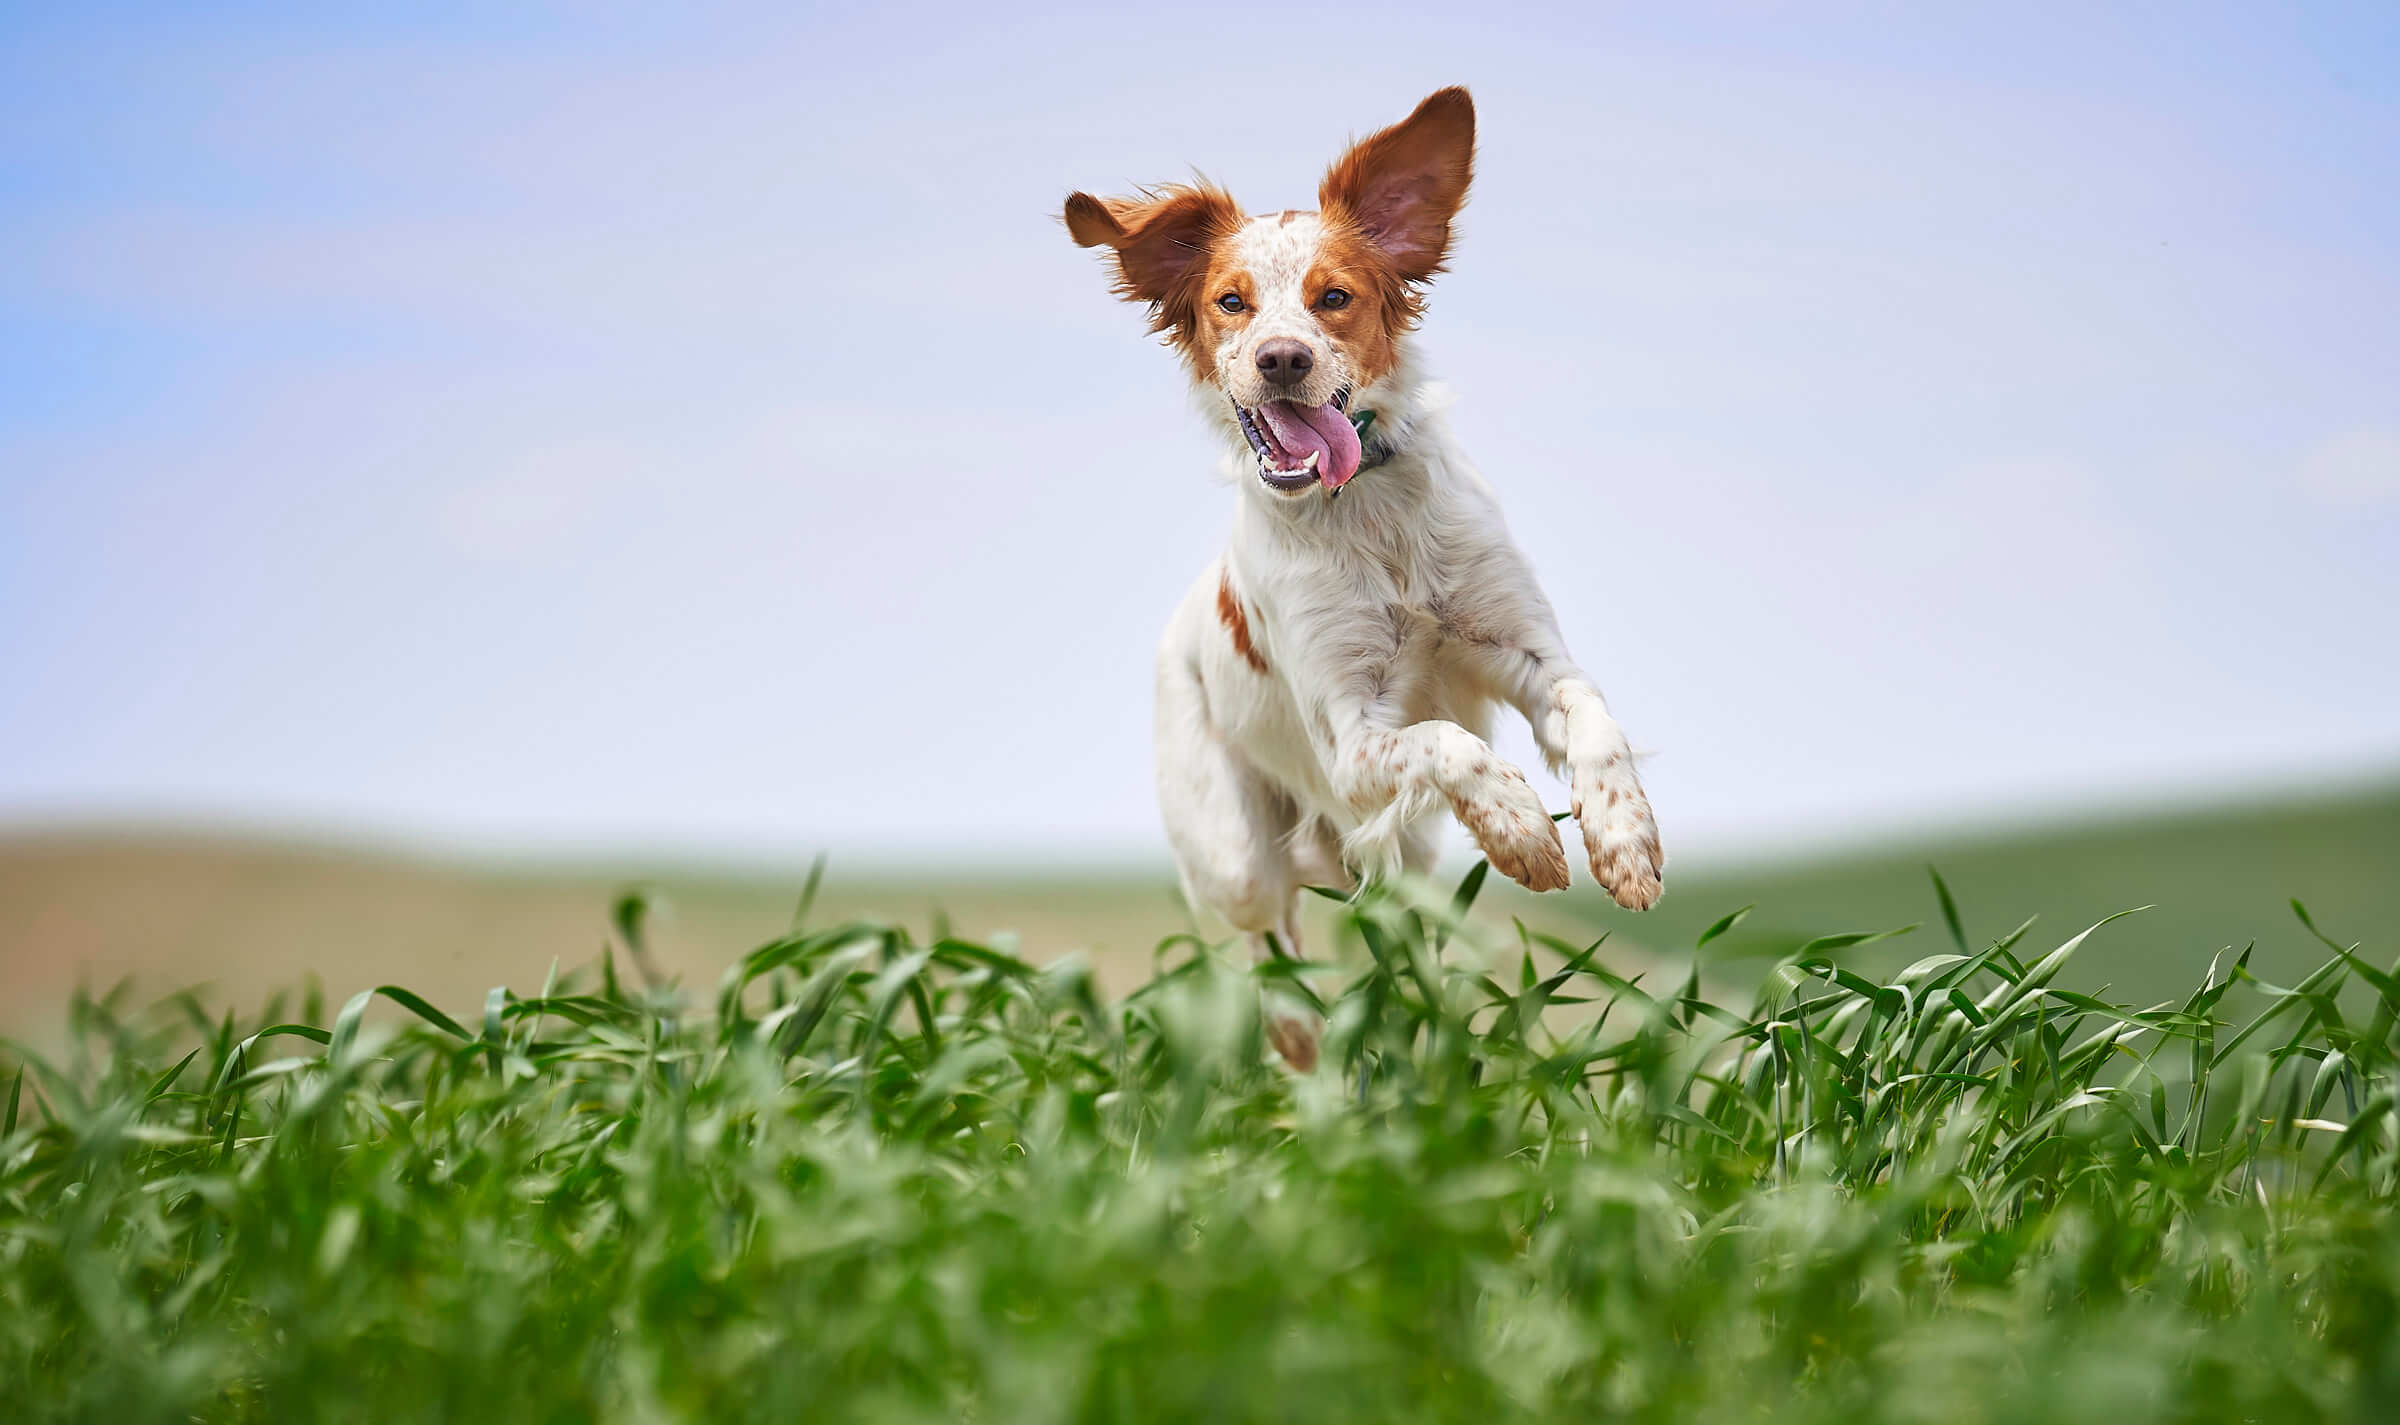 Tilly the French Brittany dog picture in a wheat field near Pullman, Washington